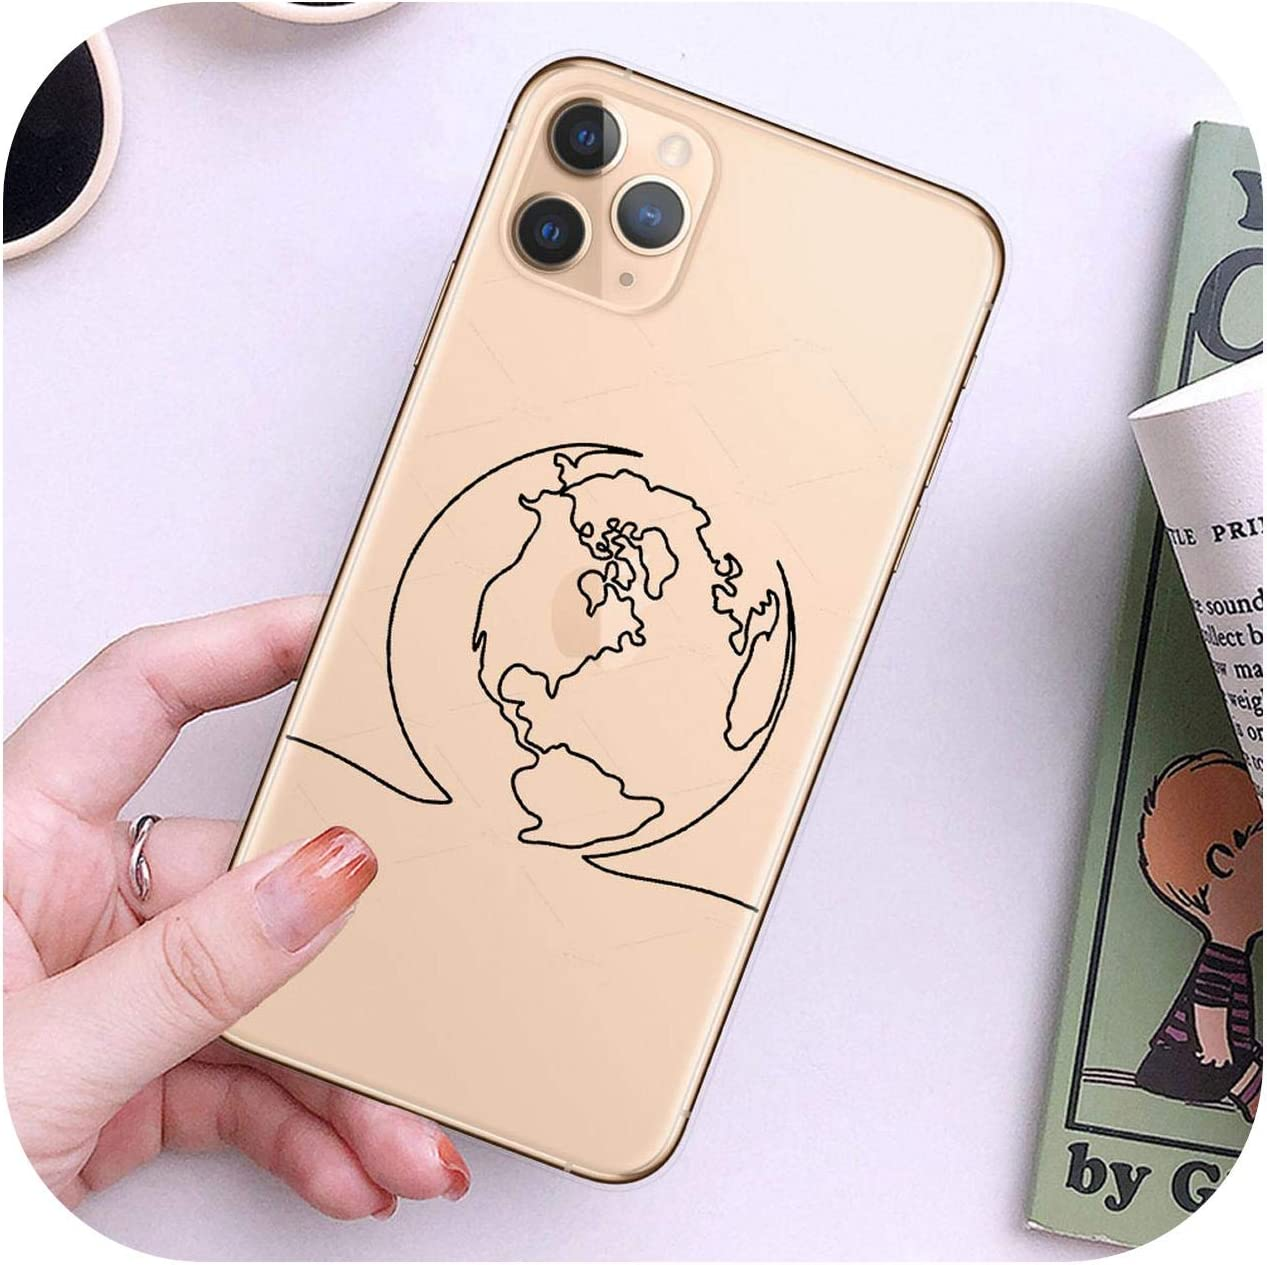 Double-June World Map Travel Just Go Phone Case for iPhone Xs Max X 11Pro Xr 7 8 6 6S Plus 5 Se Soft Back Cover Coque-T9361-For iPhone 11